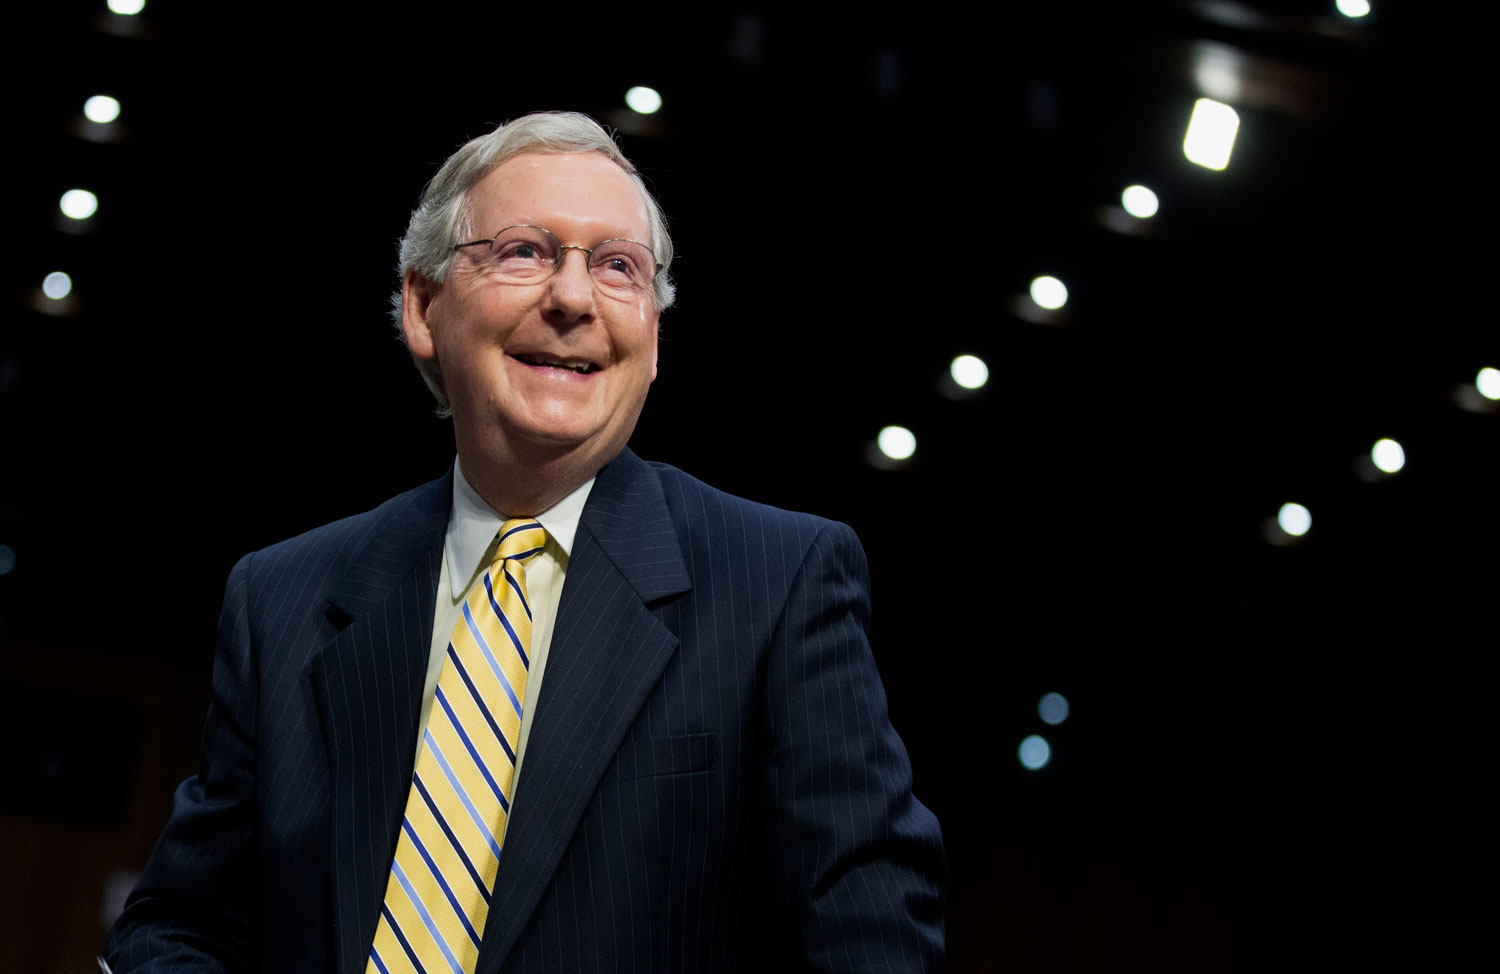 Days-After-Decrying-Flat-Wages-McConnell-Proposes-Lowering-Wages-by-13-Billion